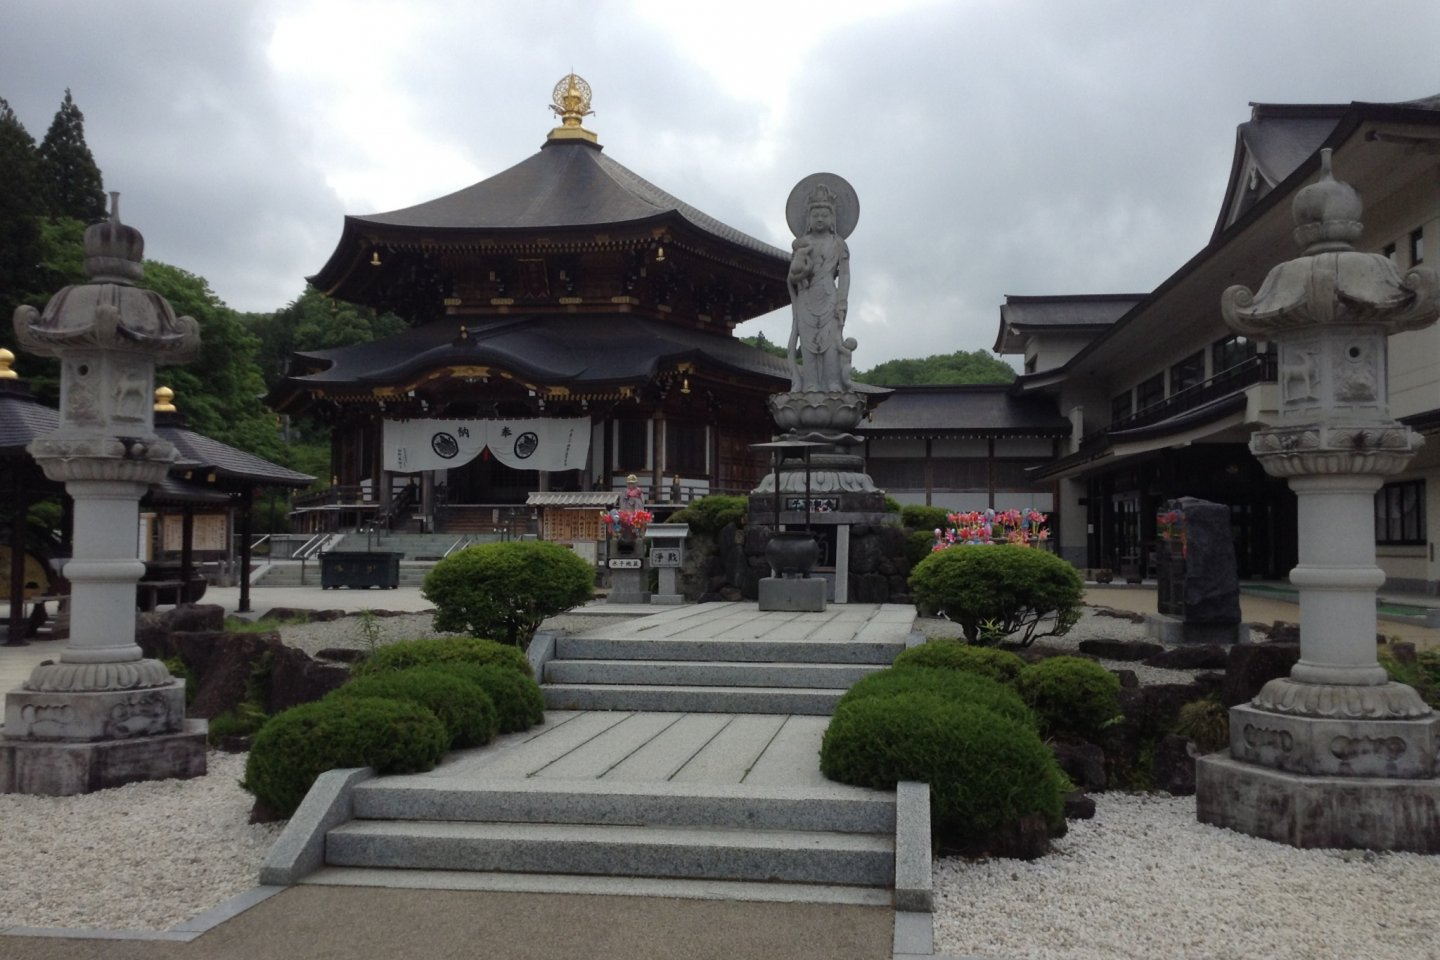 The main temple enshrines a the scroll of Amida Buddha which came from China. The temple was built using traditional craftsmen techniques with no nails of any kind.